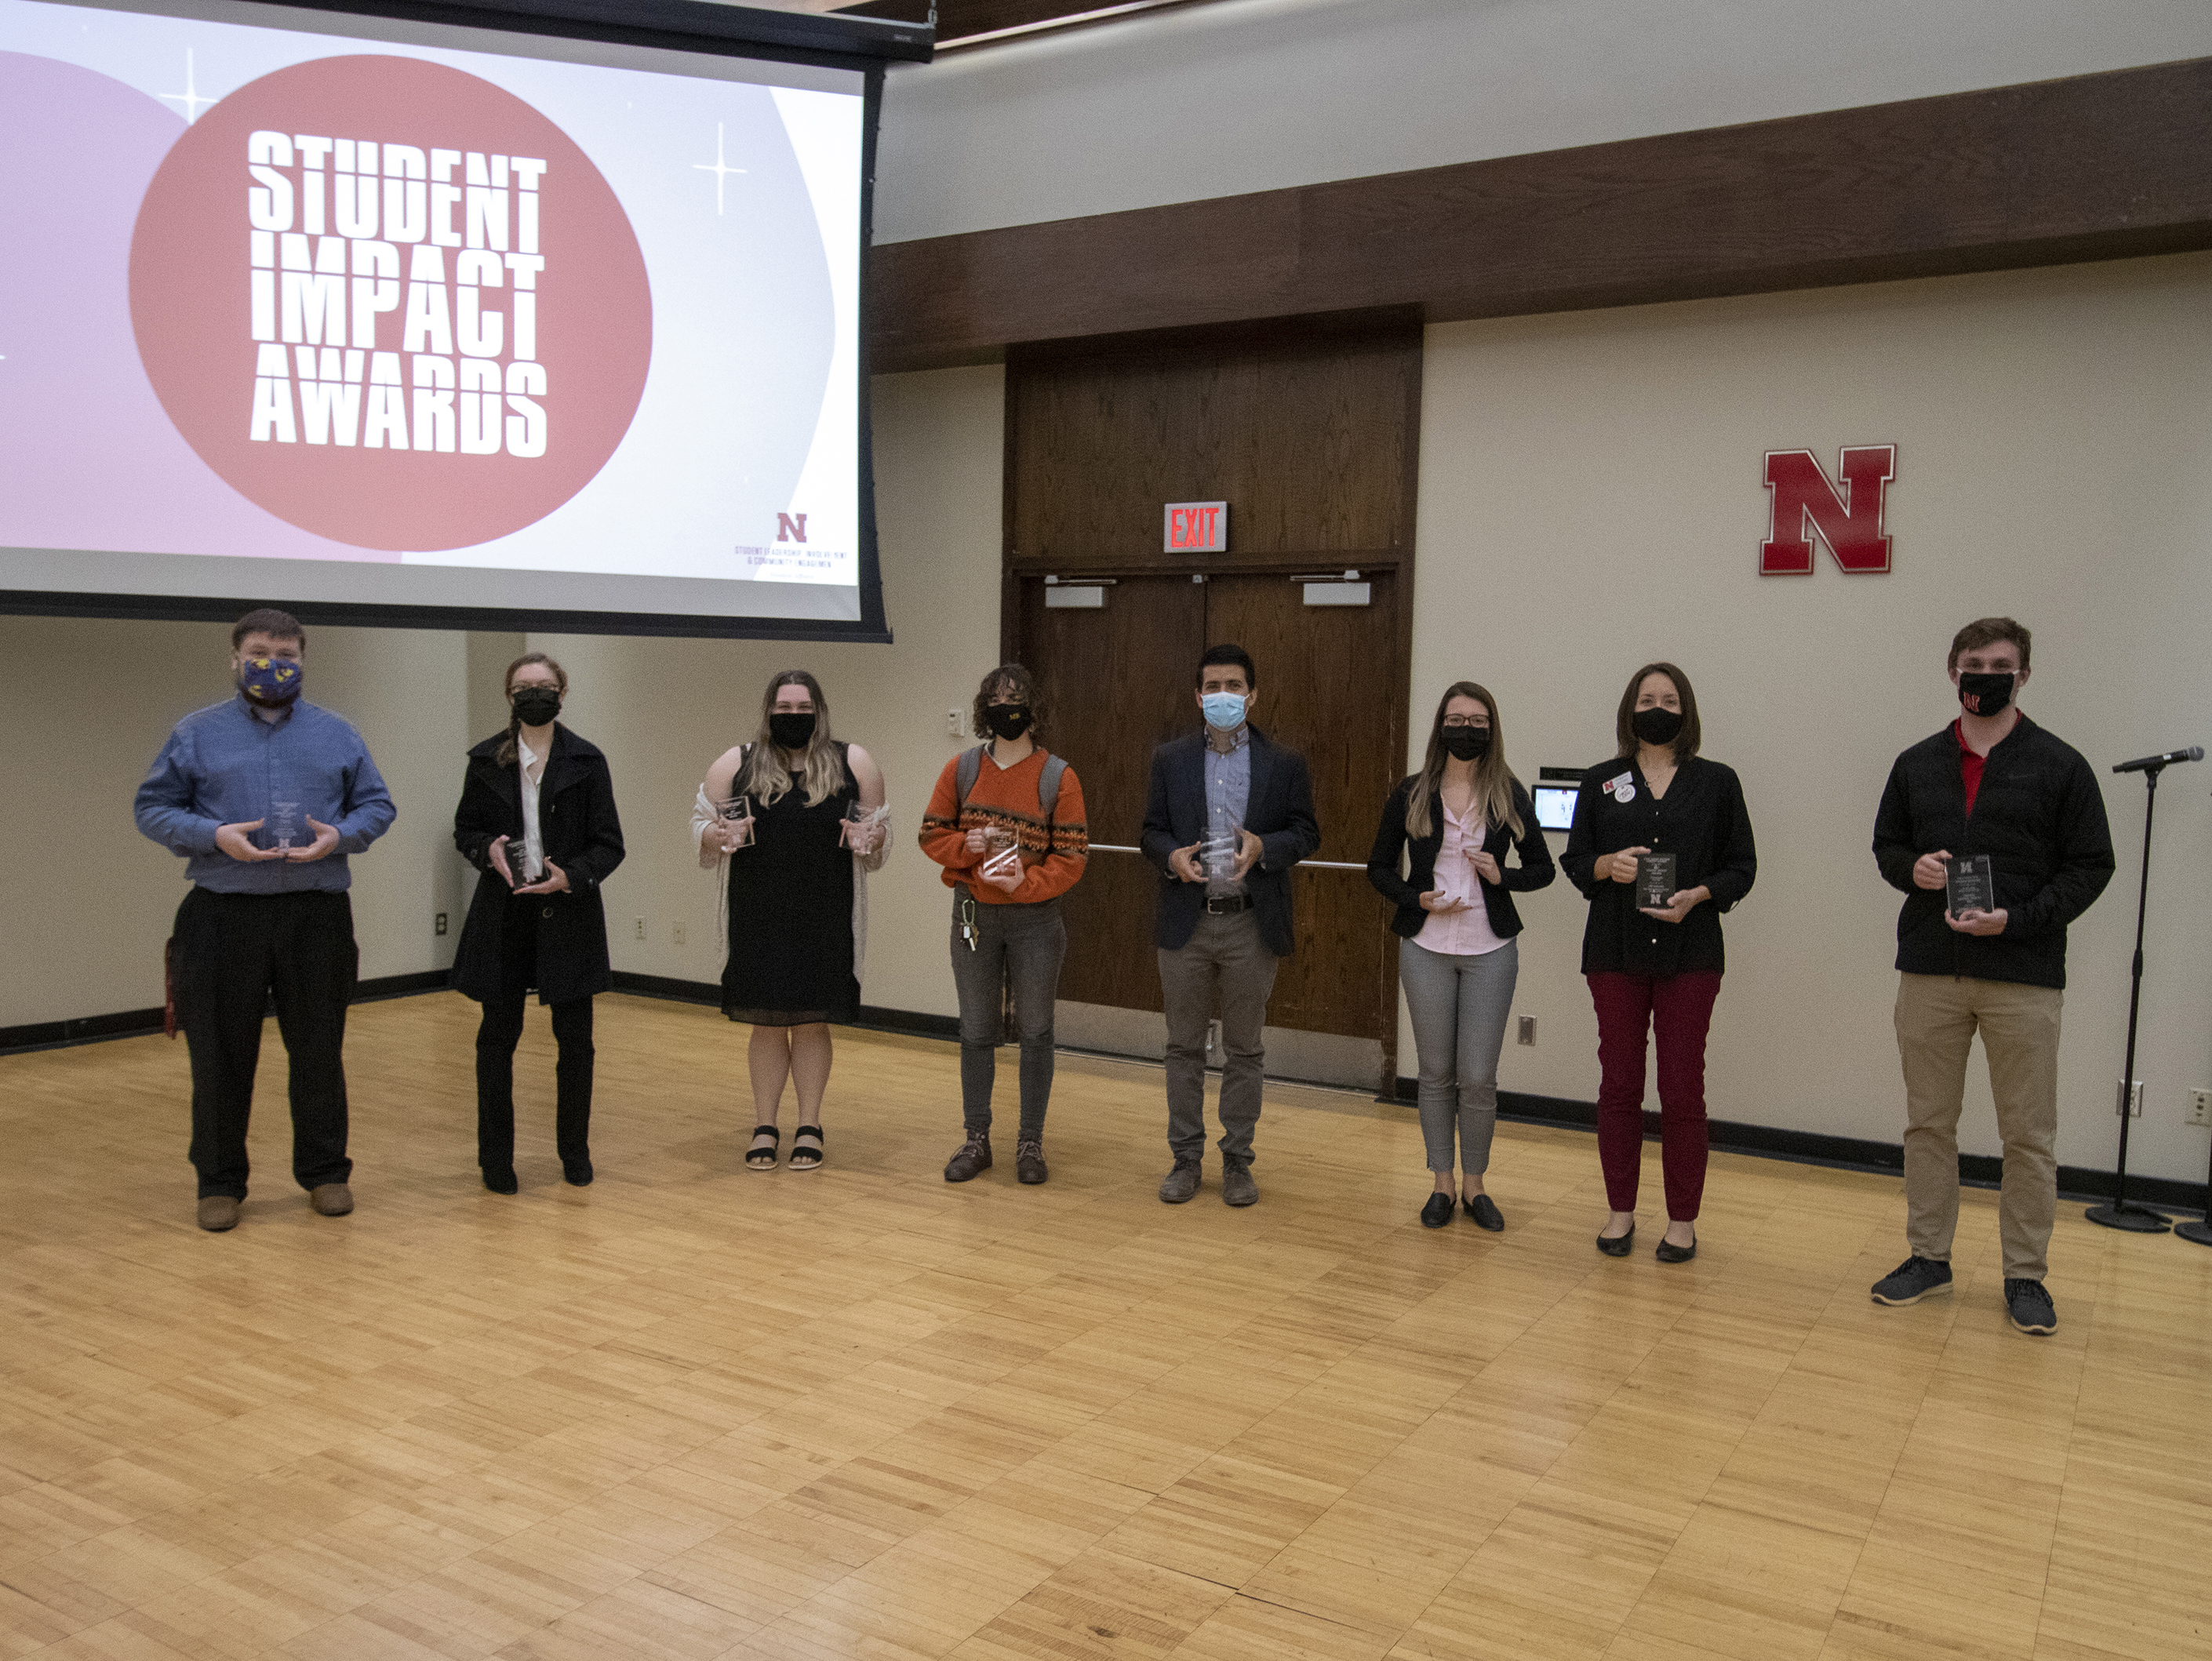 Winners of the Student Impact Awards were announced April 15, 2021 at the University of Nebraska-Lincoln [ Mike Jackson | Student Affairs ]